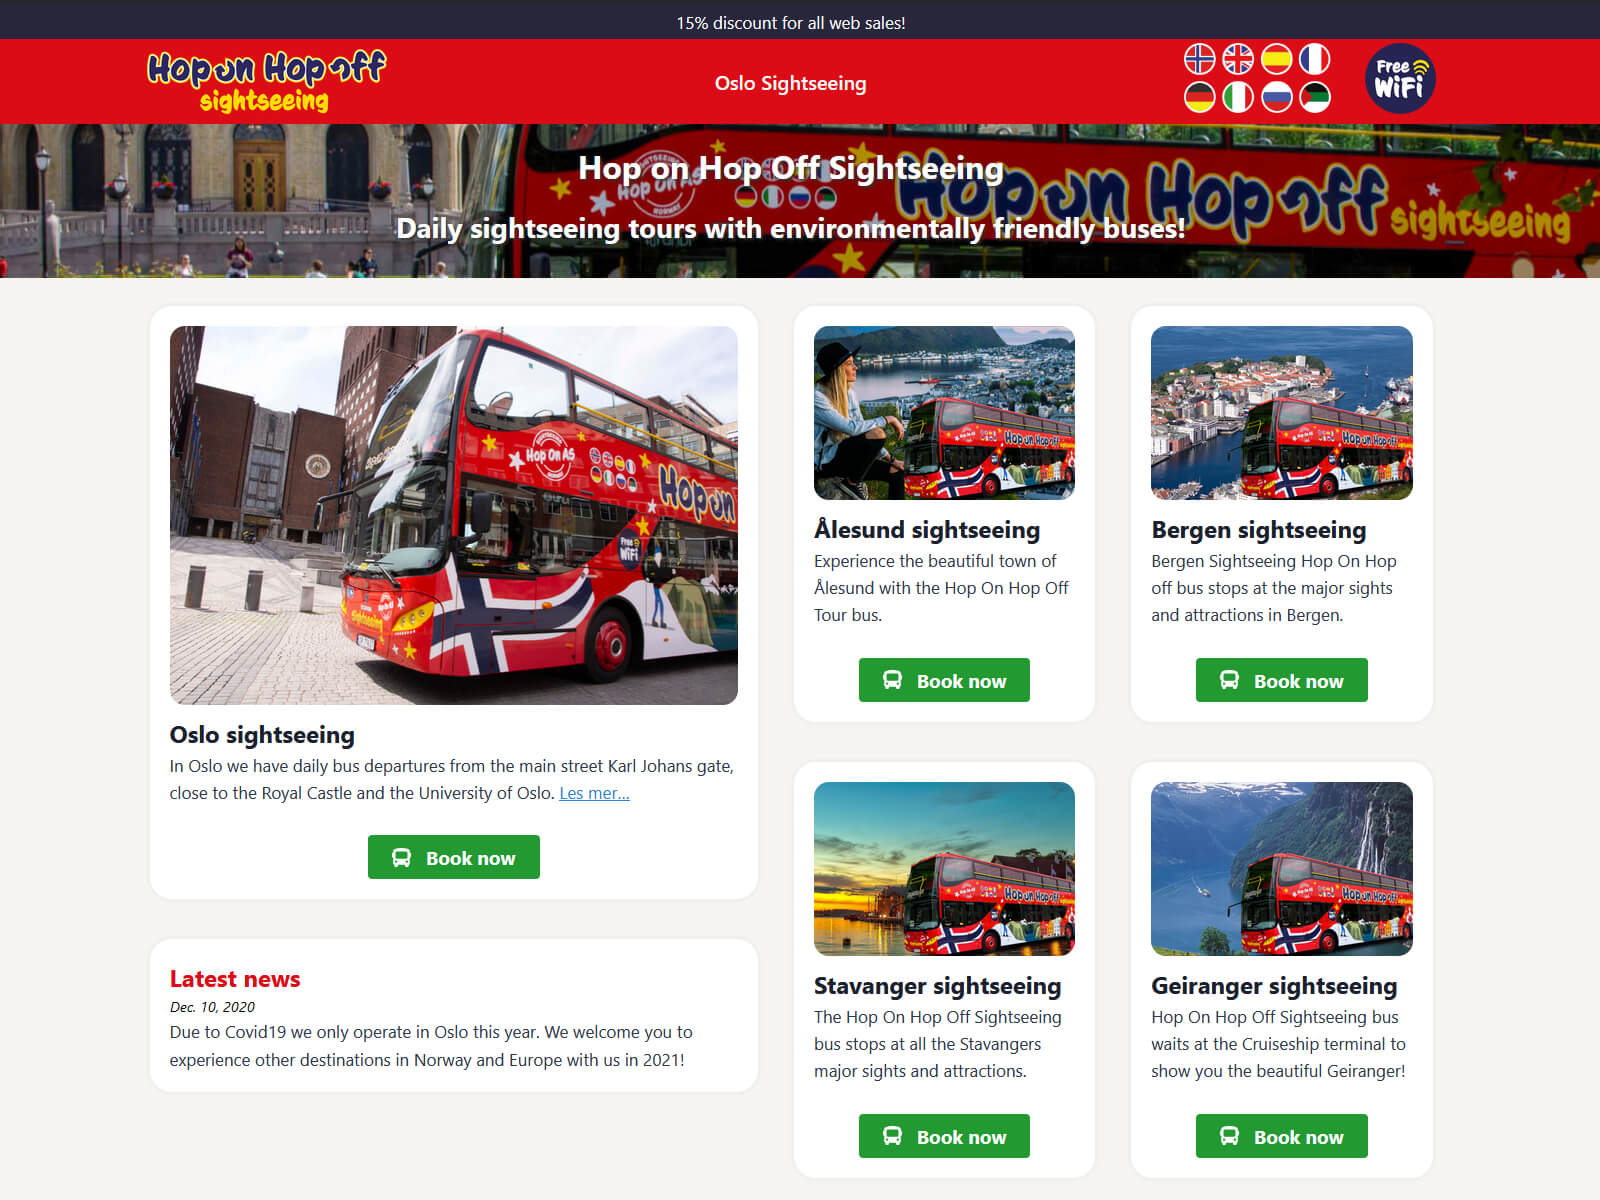 Hop On Hop Off sightseeing bus website